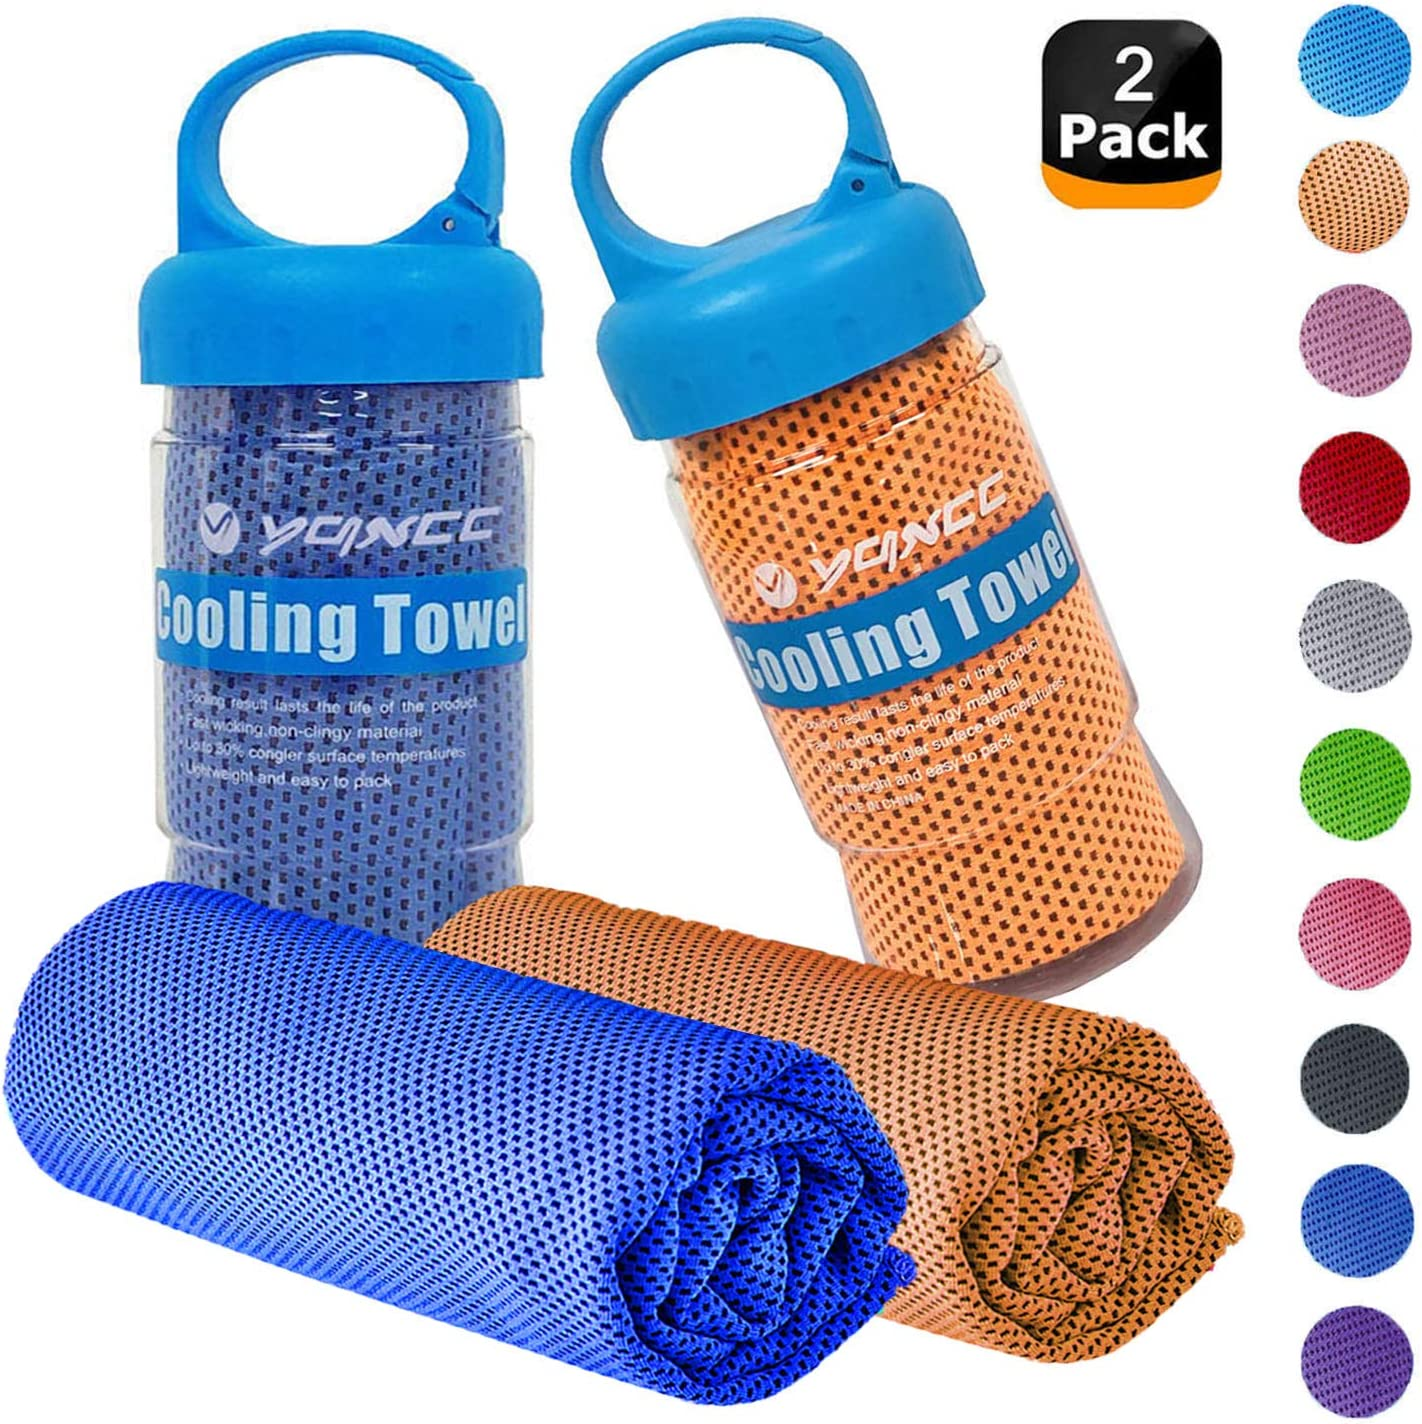 "YQXCC Cooling Towels 2 Pack (47""x12"") Travel Towel Microfiber Gym Towel for Men or Women Ice Cold Towels for Yoga Gym Travel Camping Golf Football & Outdoor Sports"